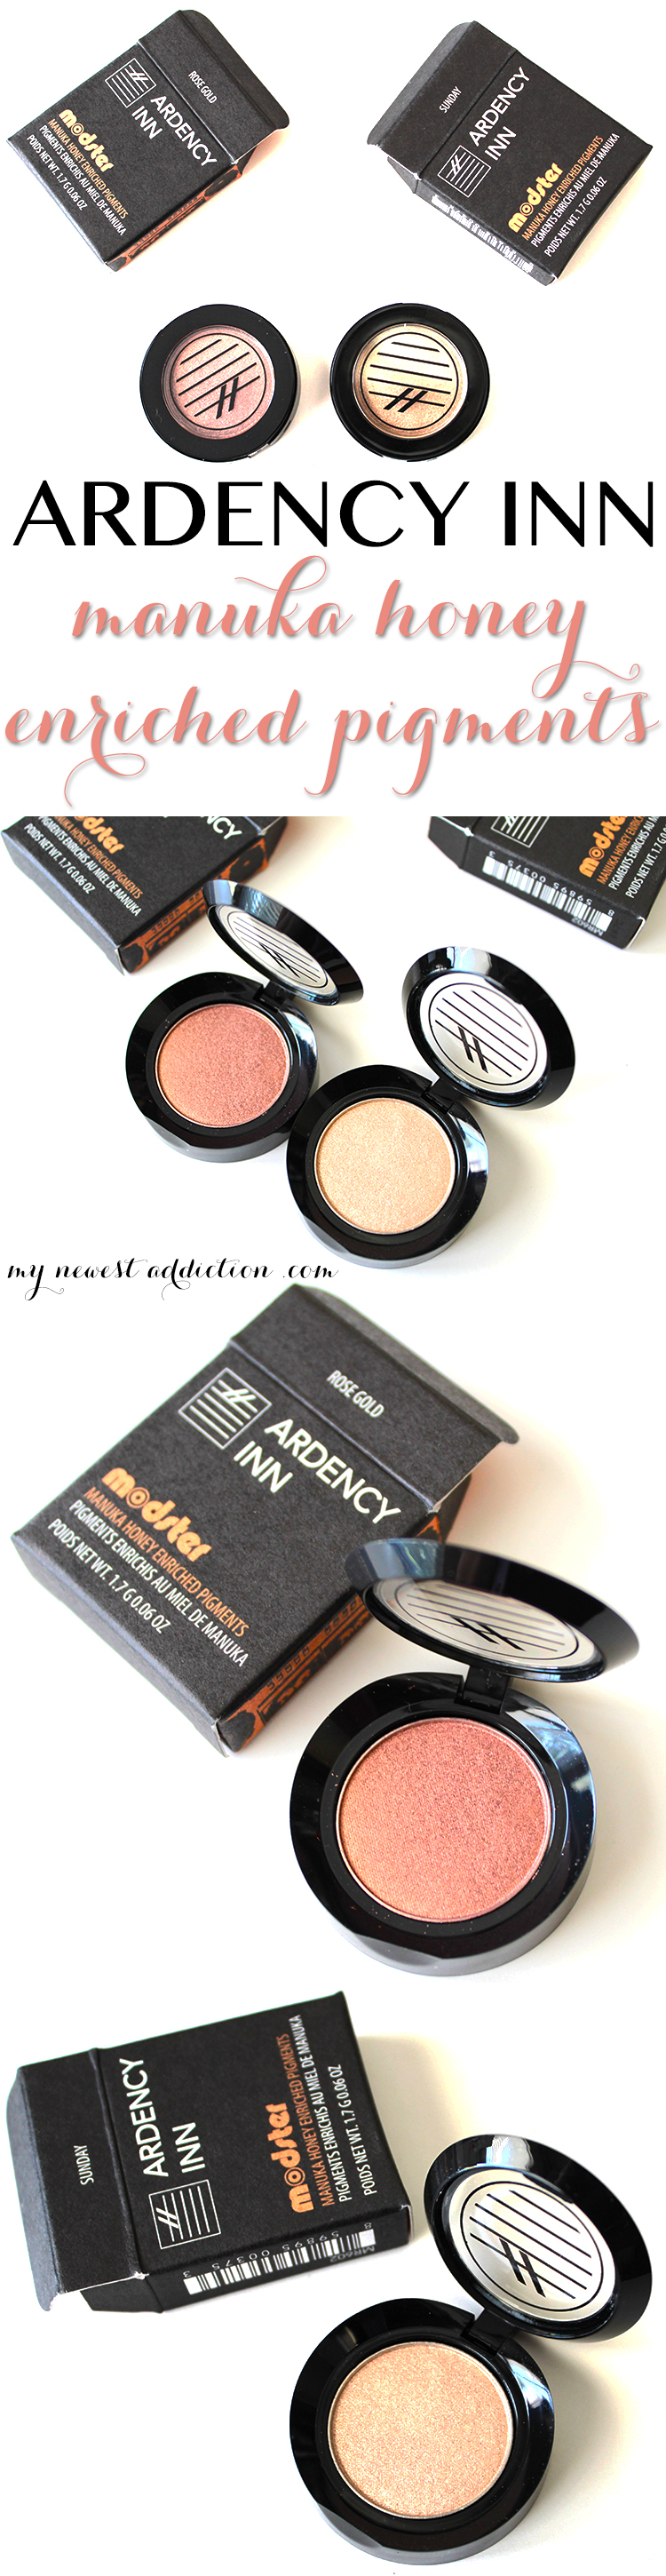 Ardency Inn Manuka Honey Enriched Pigments